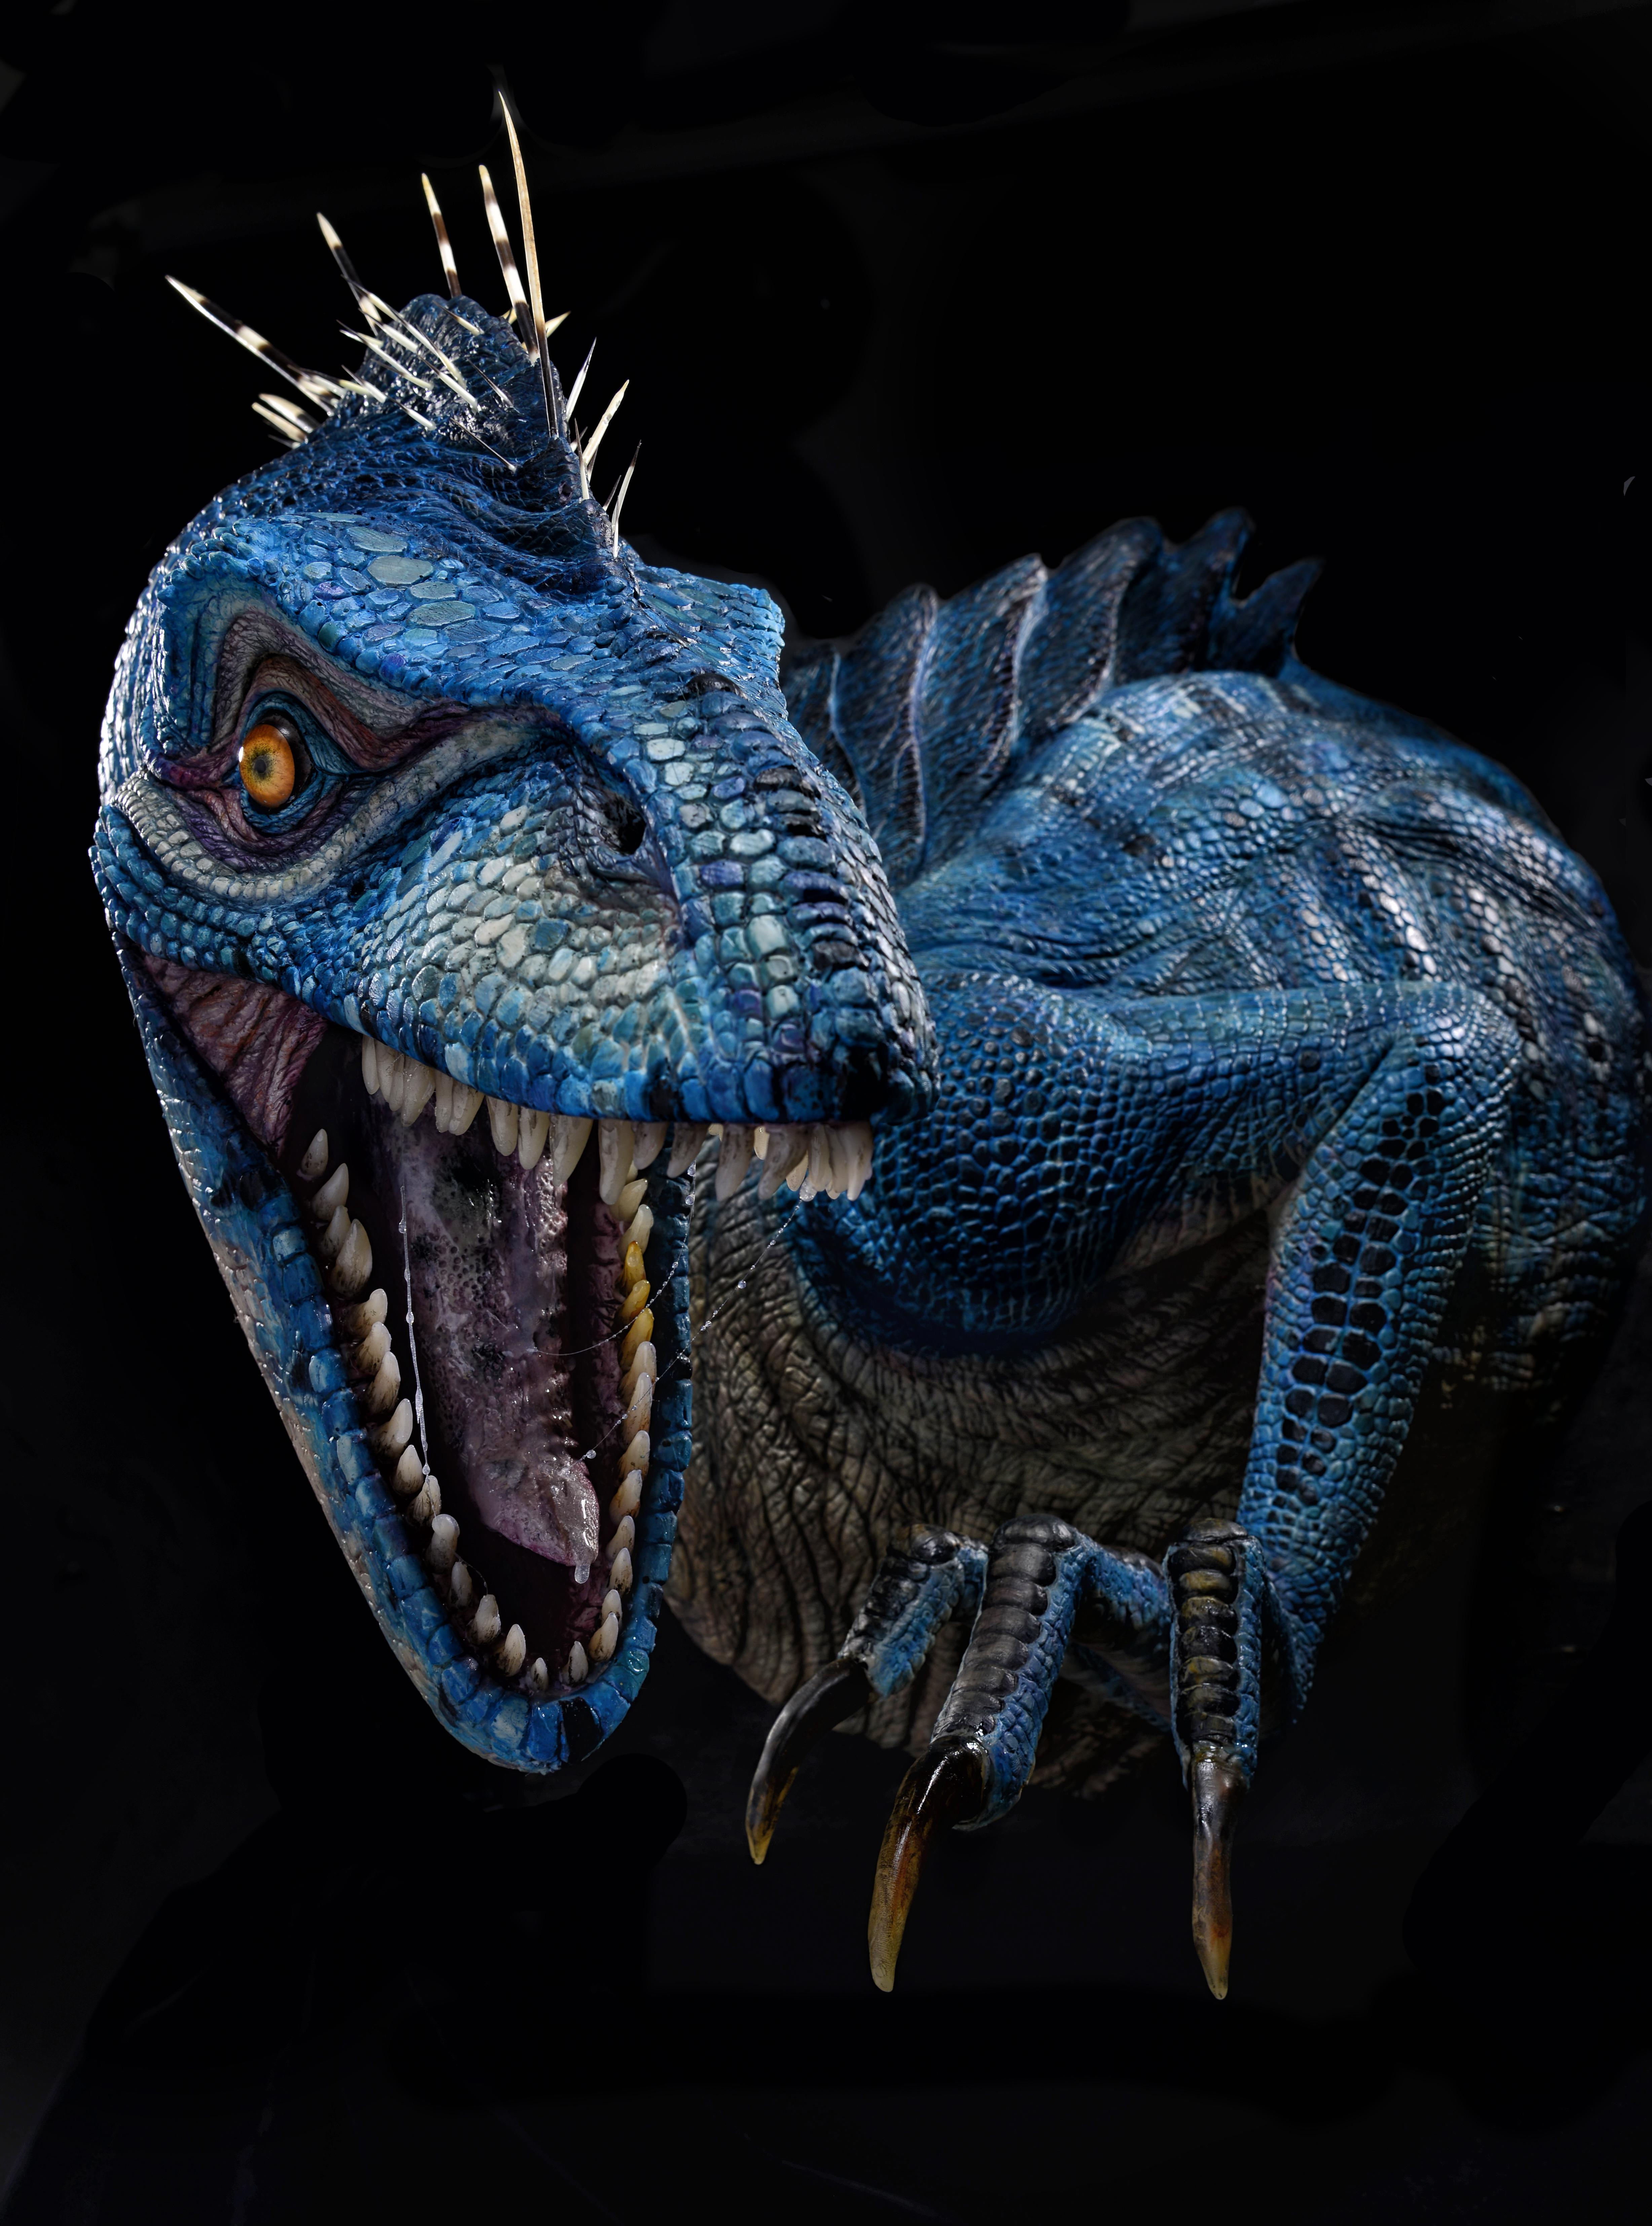 Wall mounted blue raptor sculpture stan winston school of character arts forums - Raptor dinosaure ...